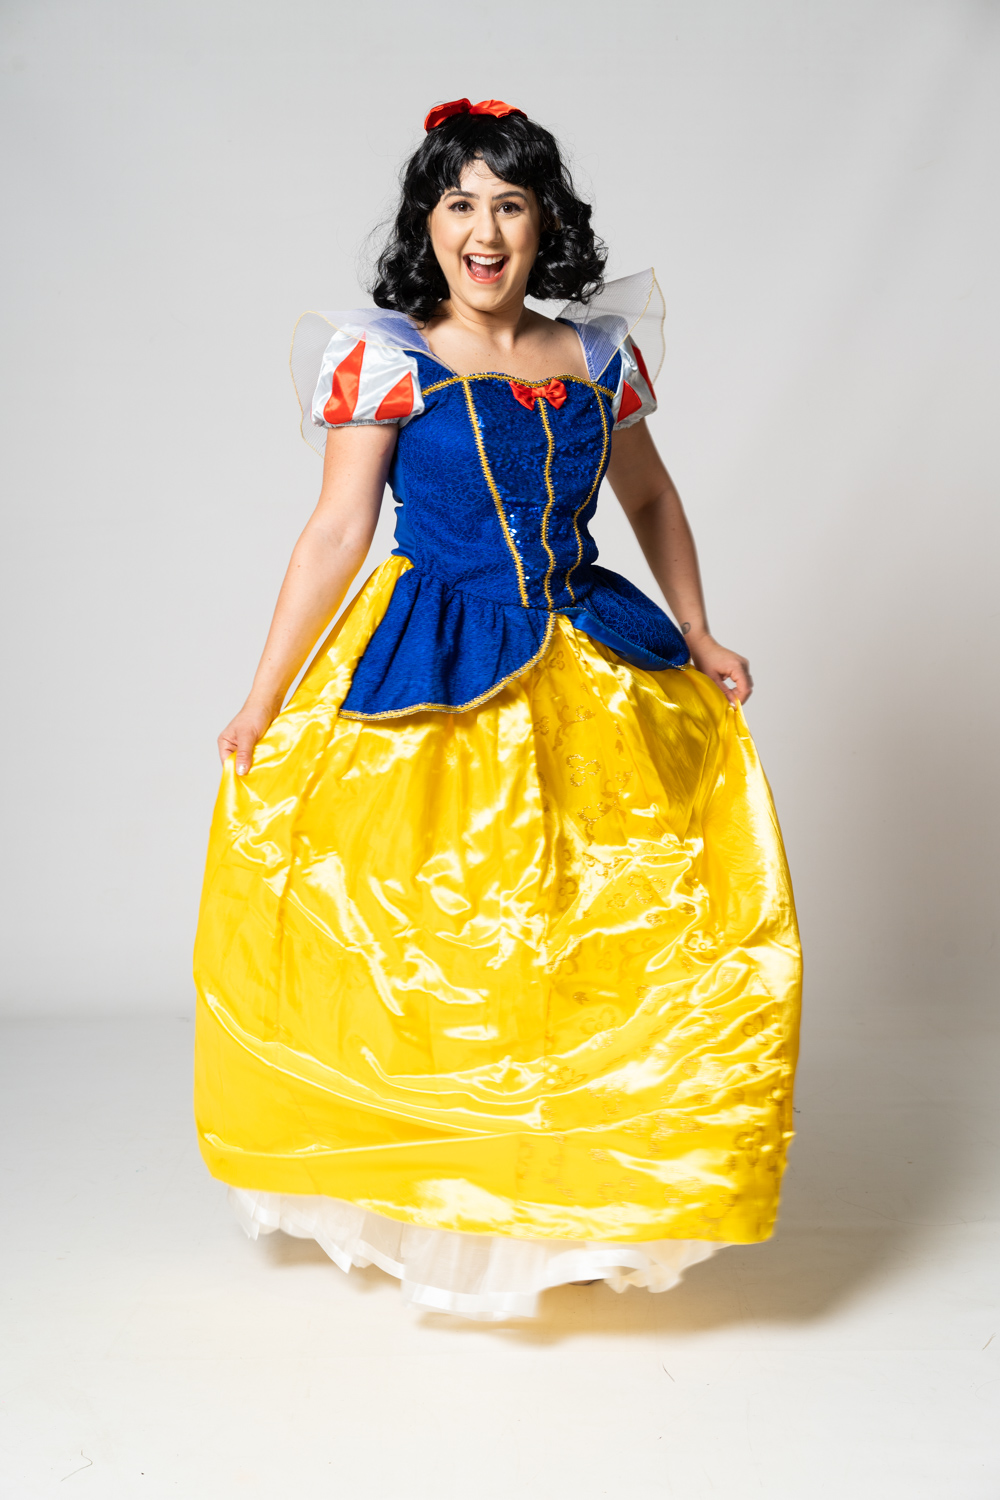 Snow White party entertainer